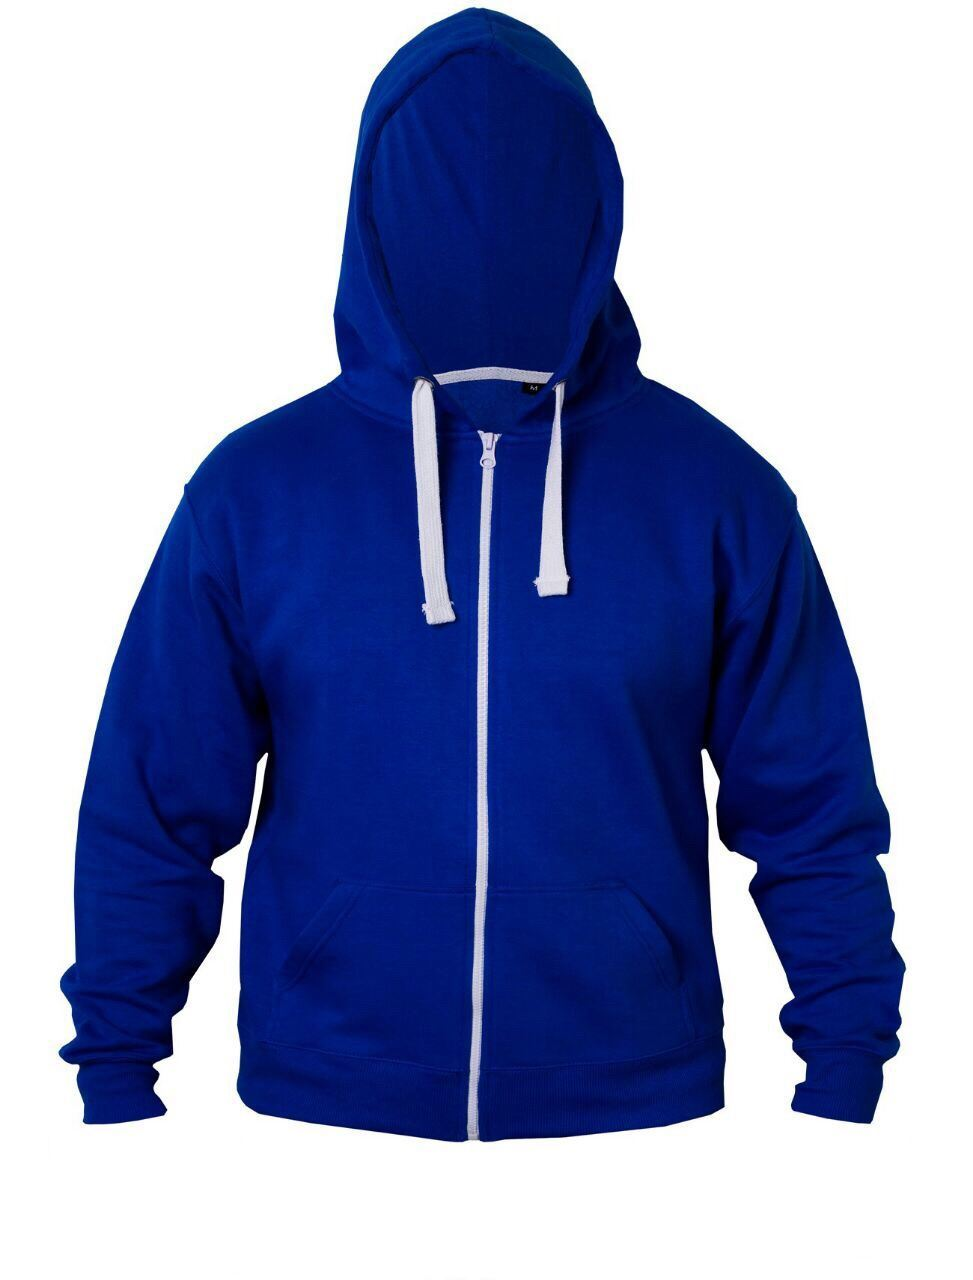 Kids zip up hoodies